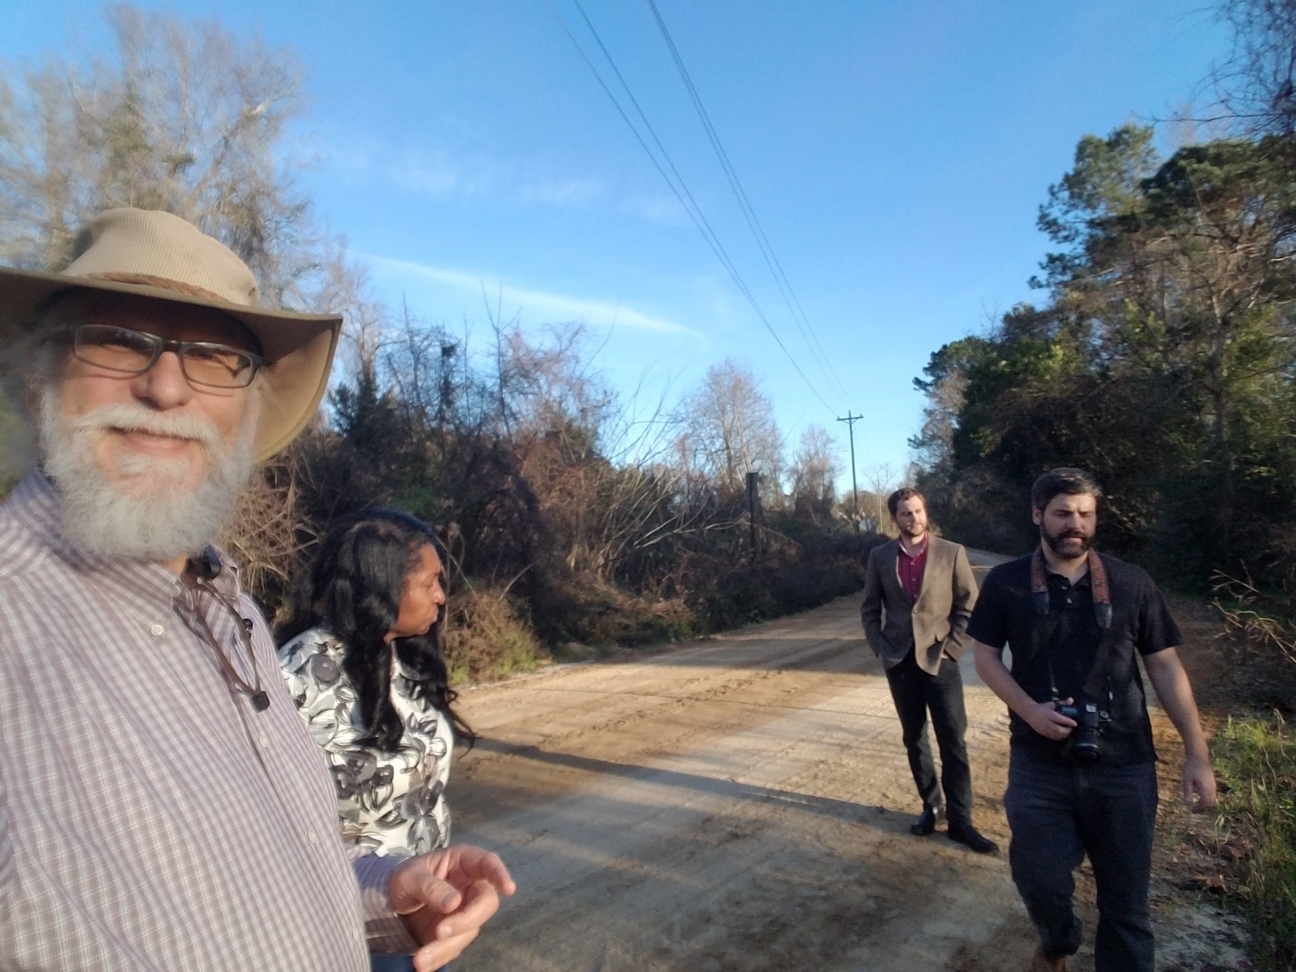 1296x972 Reporter and photographer at Beatty Branch, 2019-01-07, VDT, in Testing for firefighting chemicals in wells and waterways, by John S. Quarterman, for WWALS.net, 18 January 2019